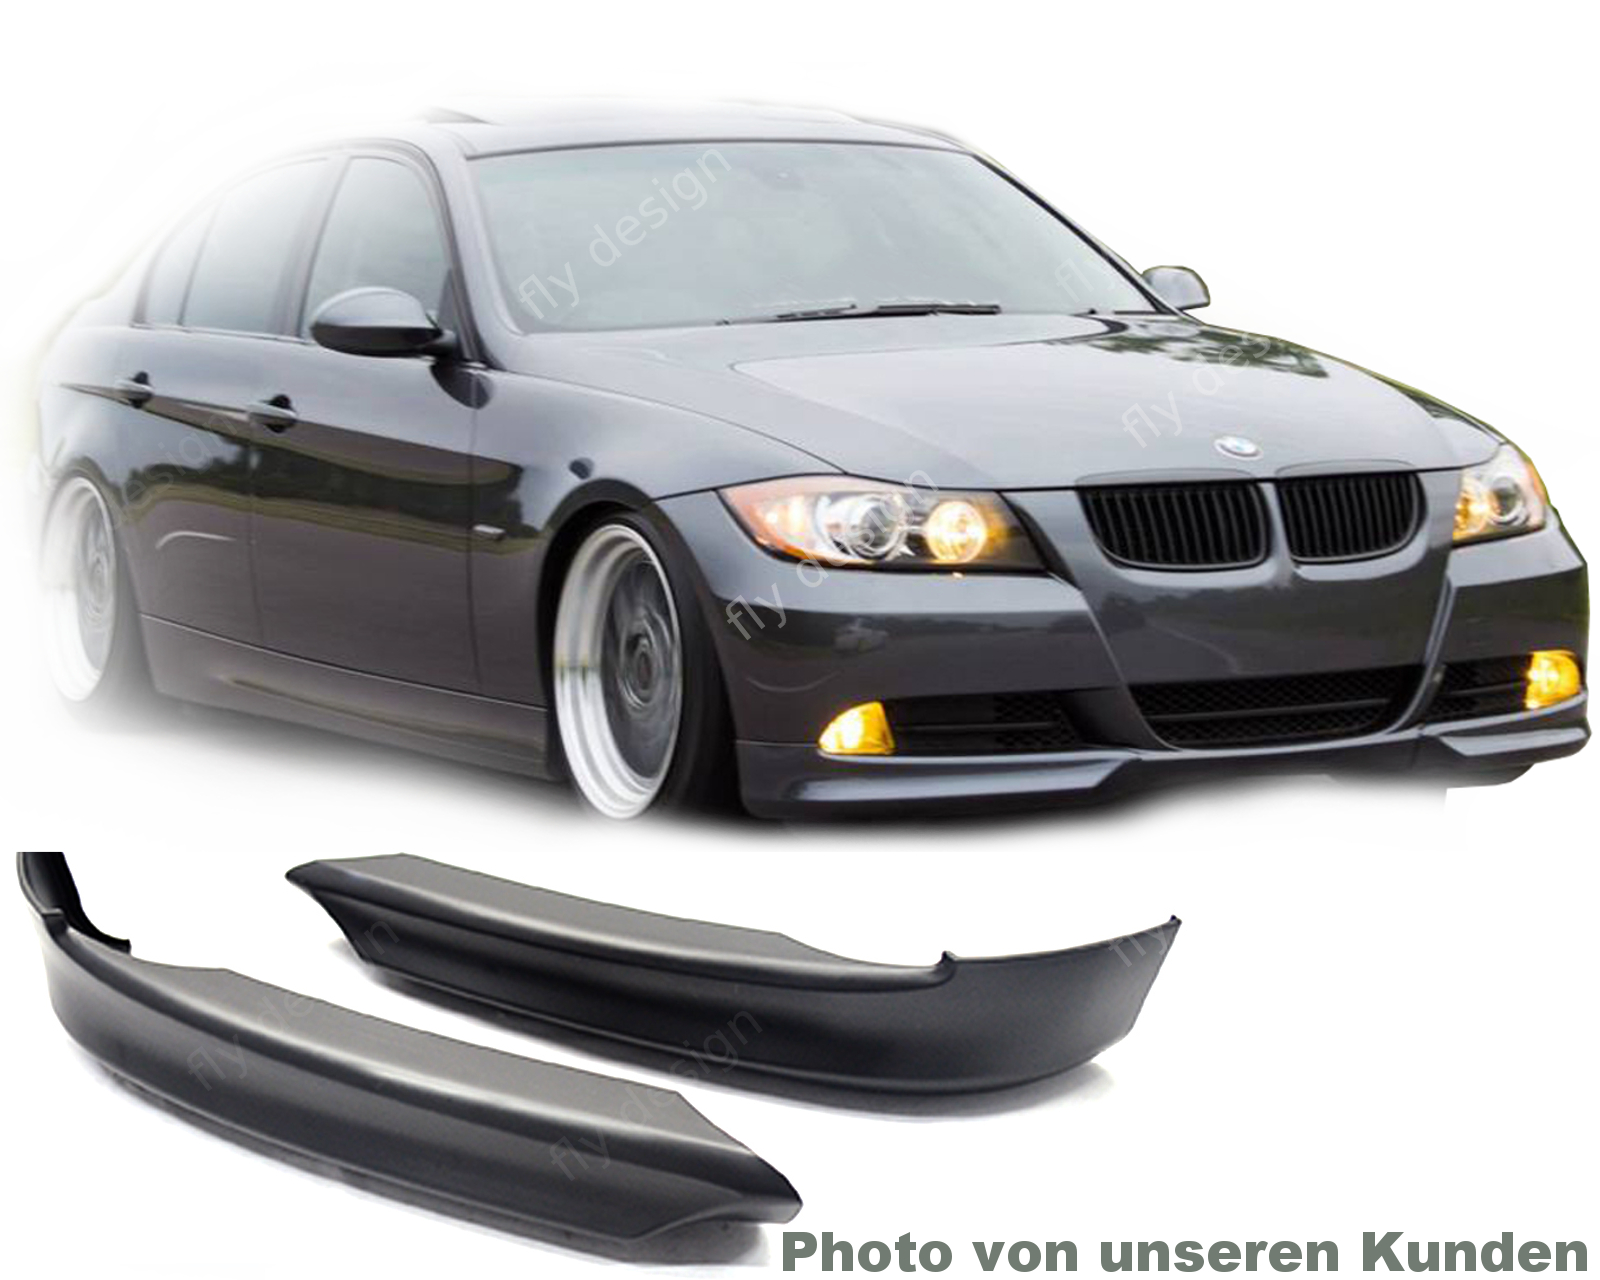 bmw e90 e91 frontspoiler spoiler front splitter diffusor. Black Bedroom Furniture Sets. Home Design Ideas